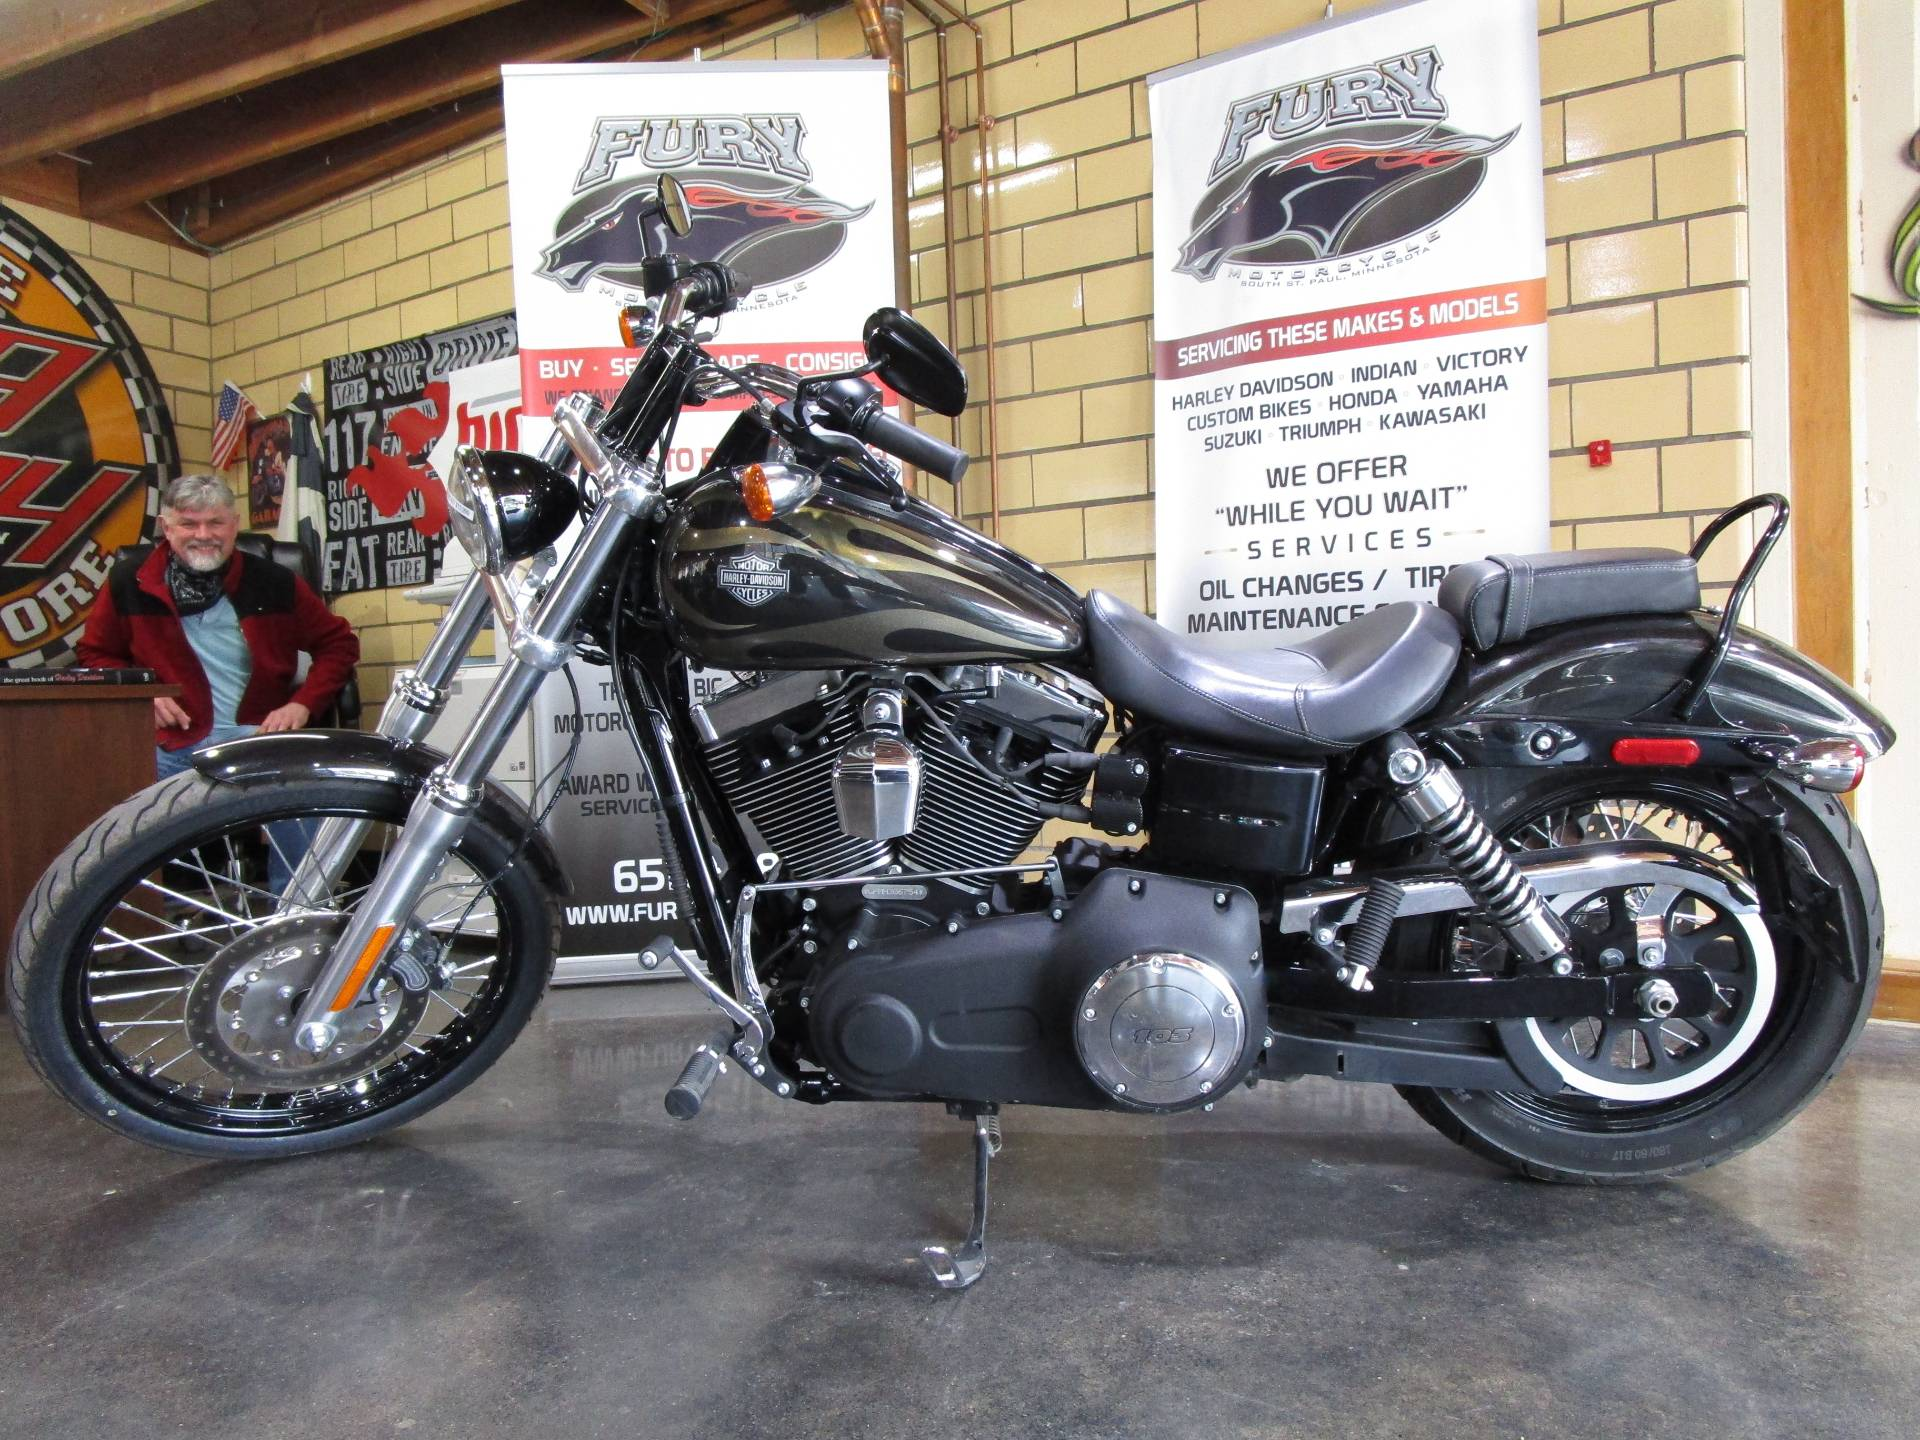 2017 Harley-Davidson Wide Glide in South Saint Paul, Minnesota - Photo 11